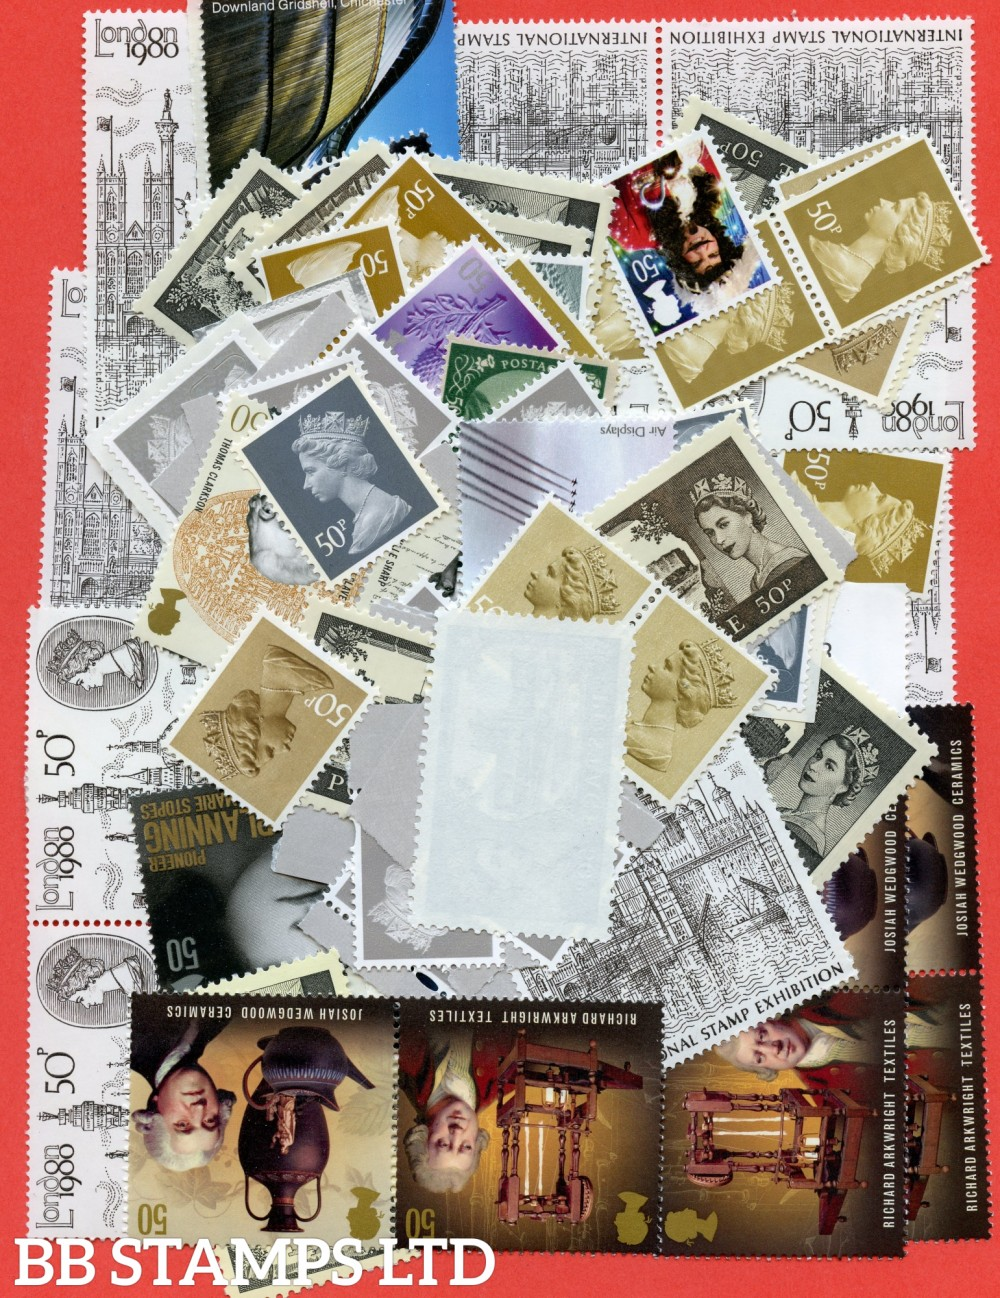 100 x 50p stamps. All of our postage lots are genuine mint stamps with gum and have never been used as postage.